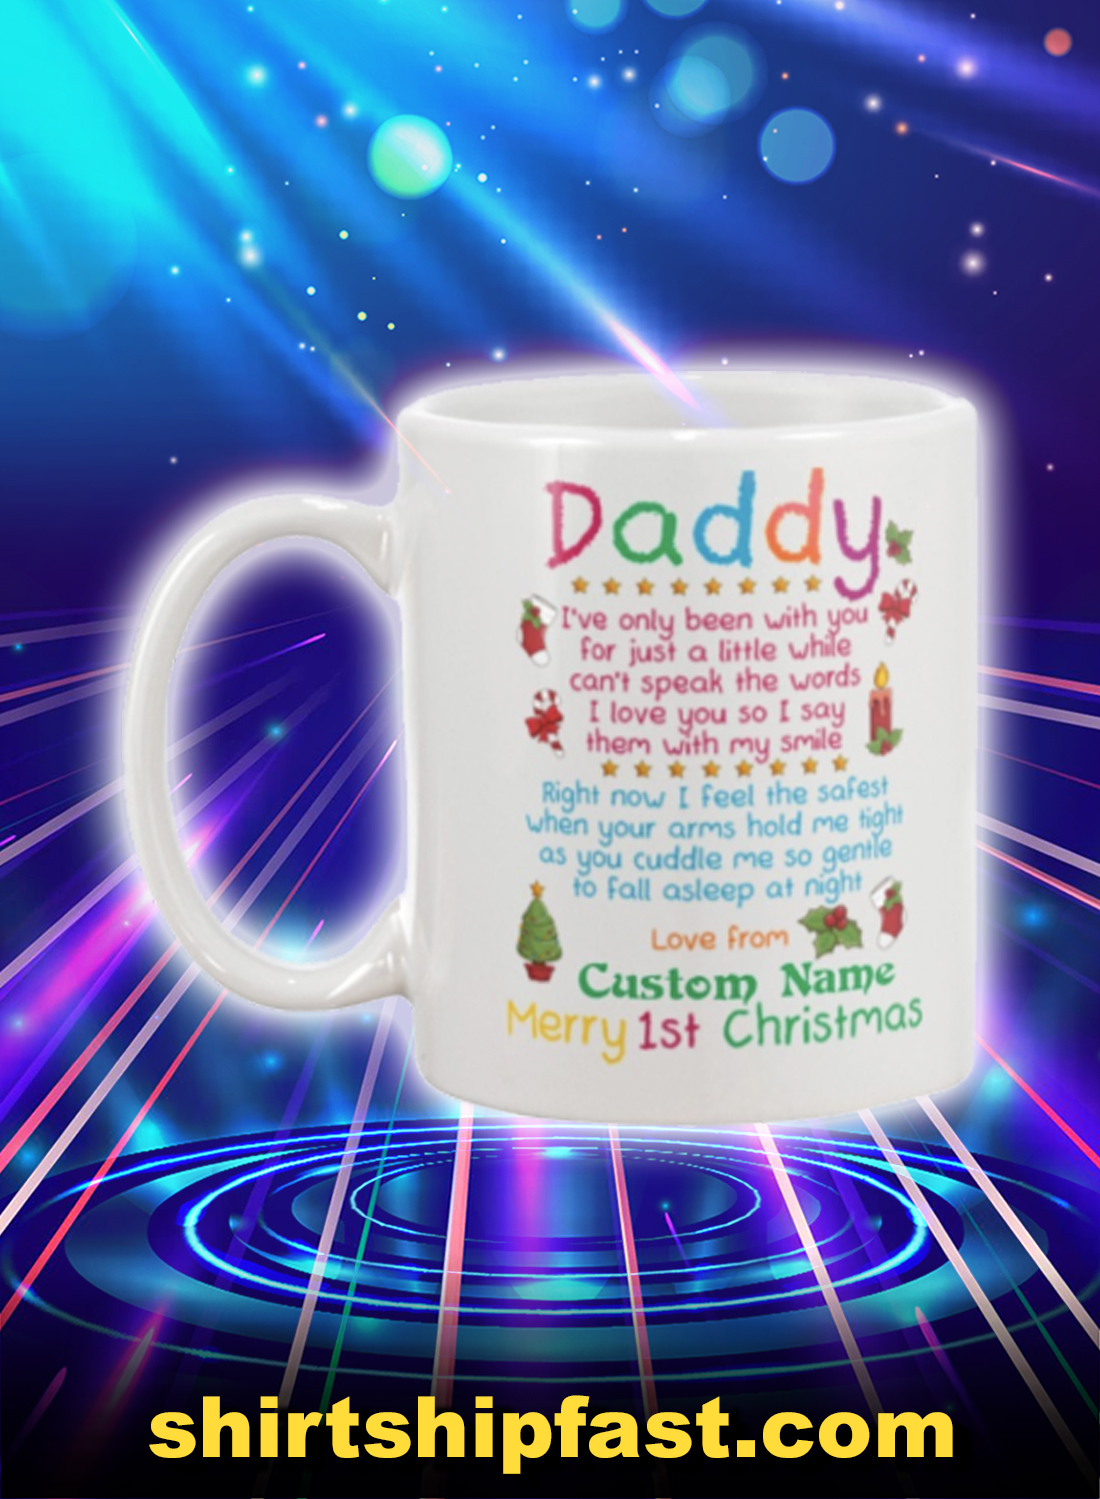 Merry 1st christmas daddy personalized custom name mug - Picture 1